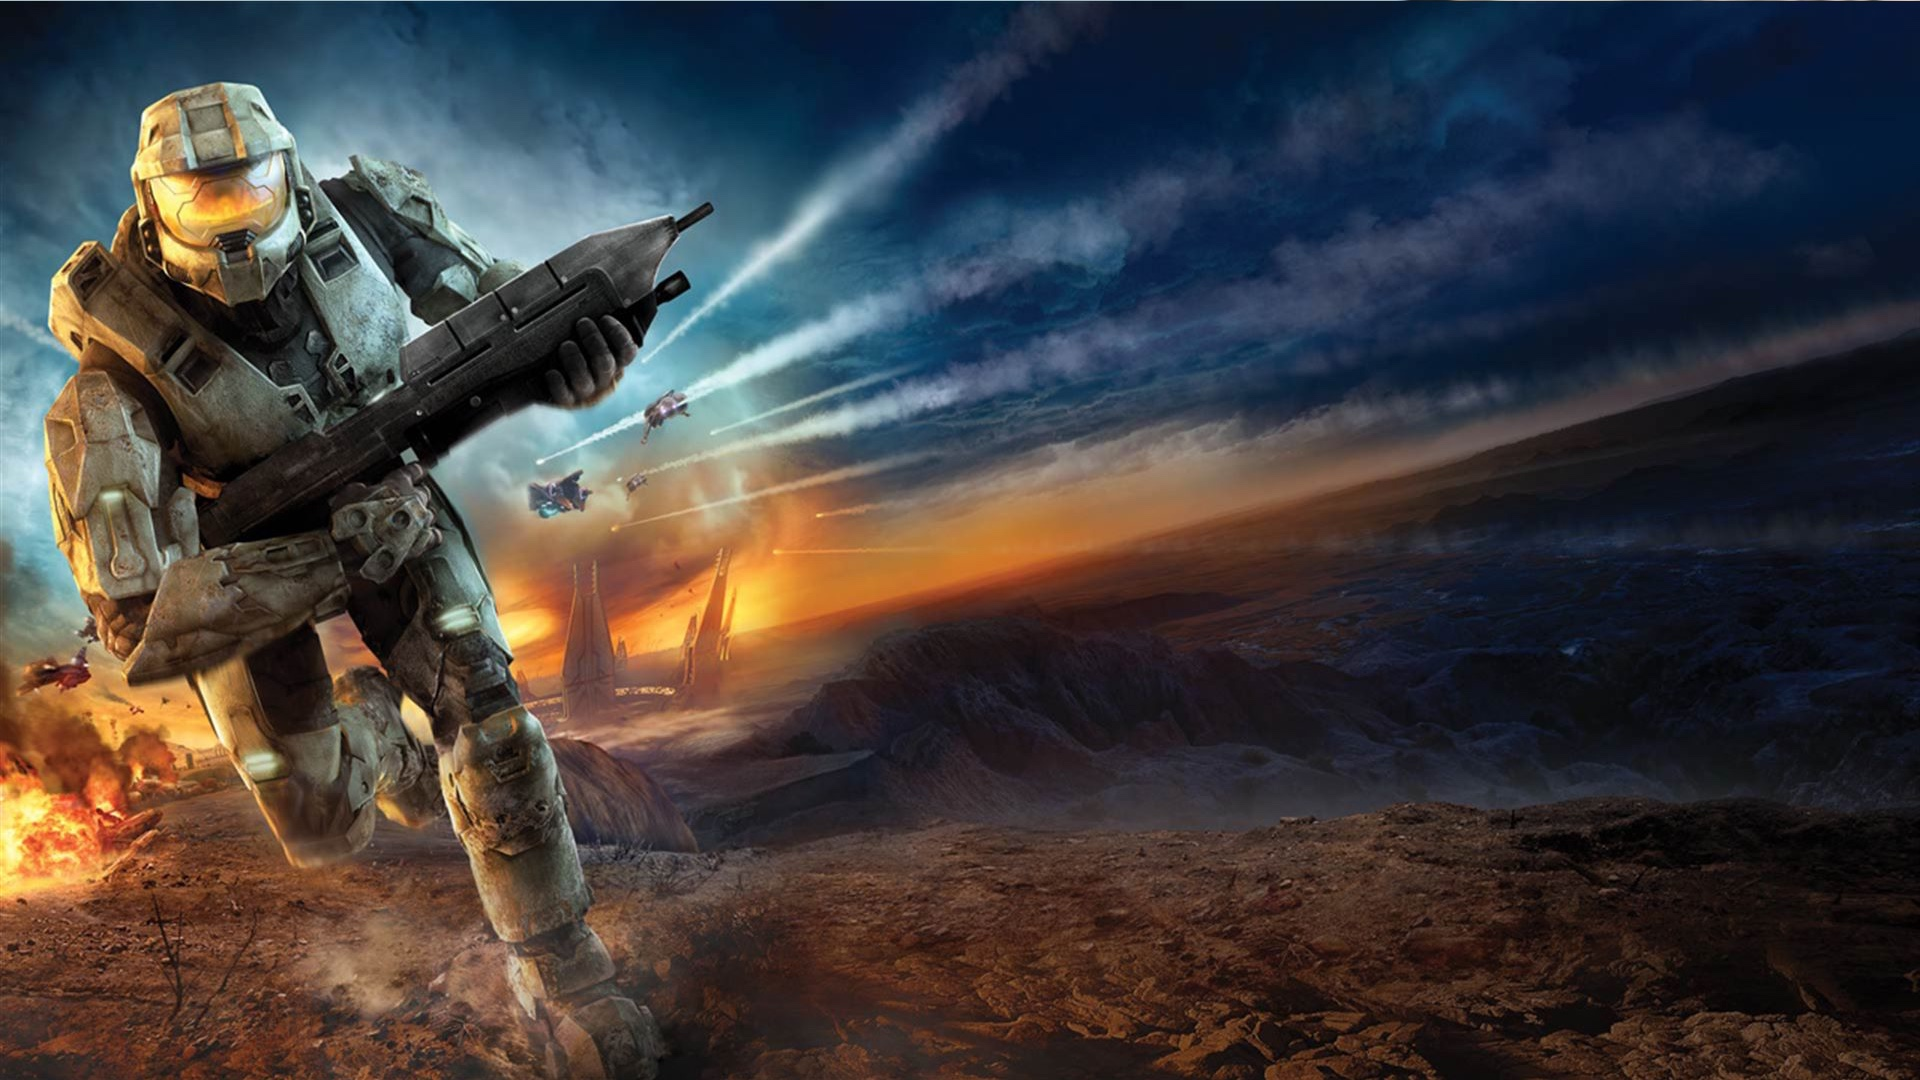 the-long-awaited-halo-series-will-be-directed-by-robin-hood-director-otto-bathurst-social.jpg